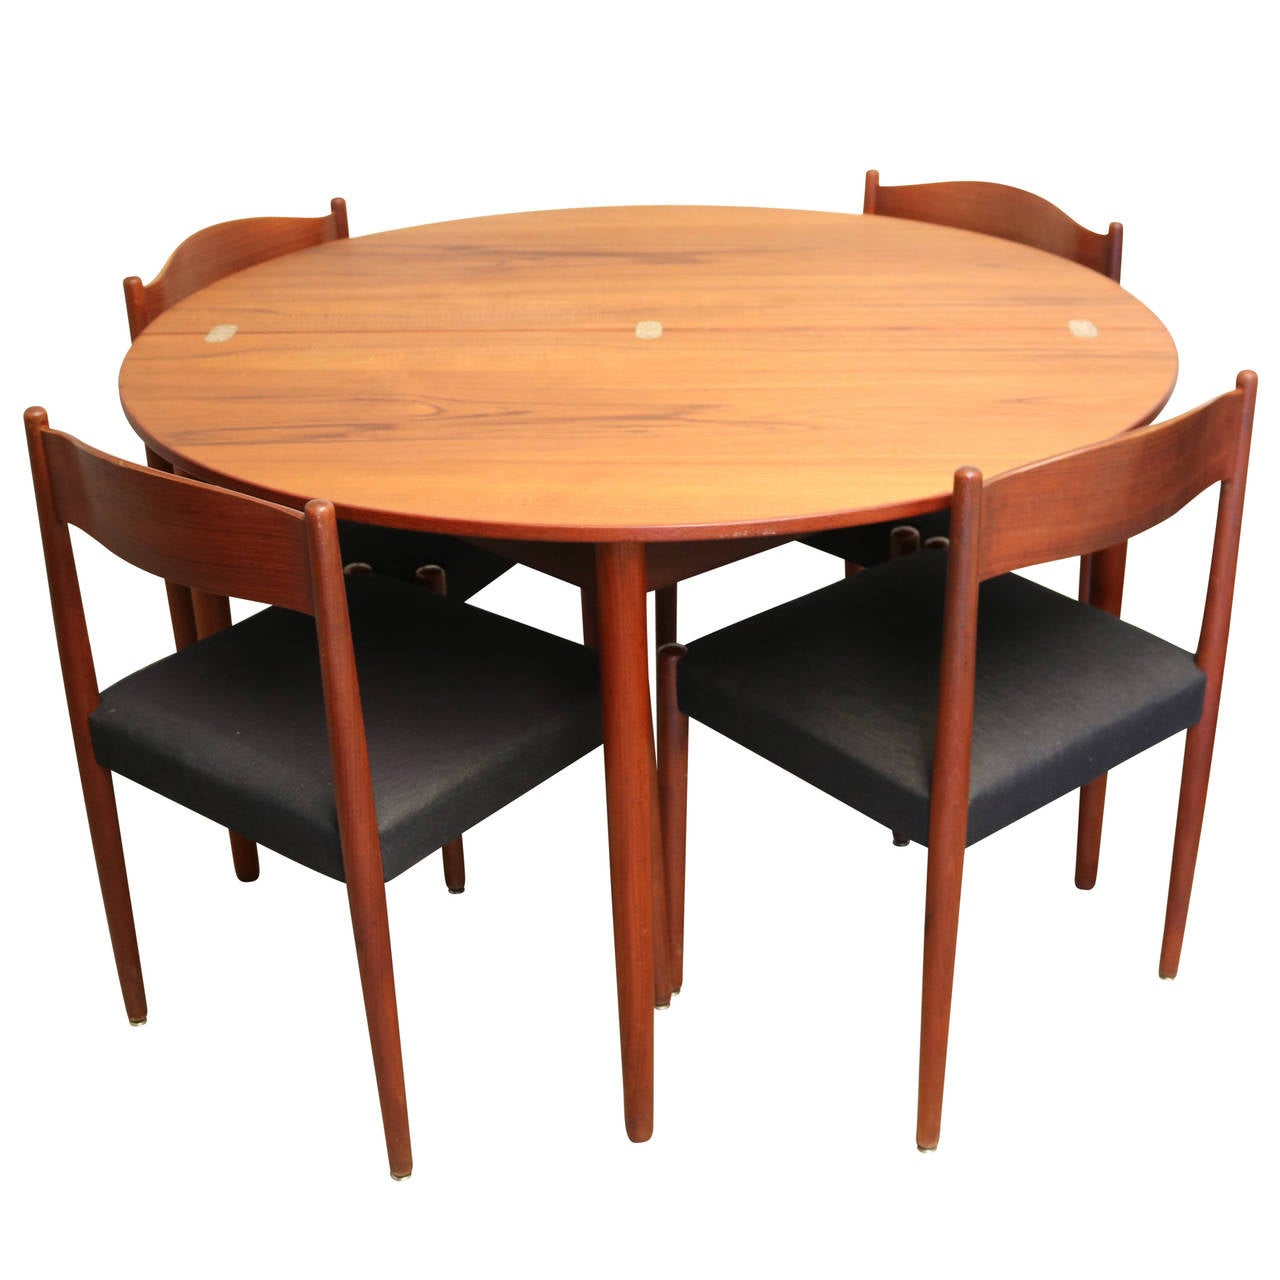 Round teak folding dining table and chairs by poul volther for frem rojle at 1stdibs Round dining table set